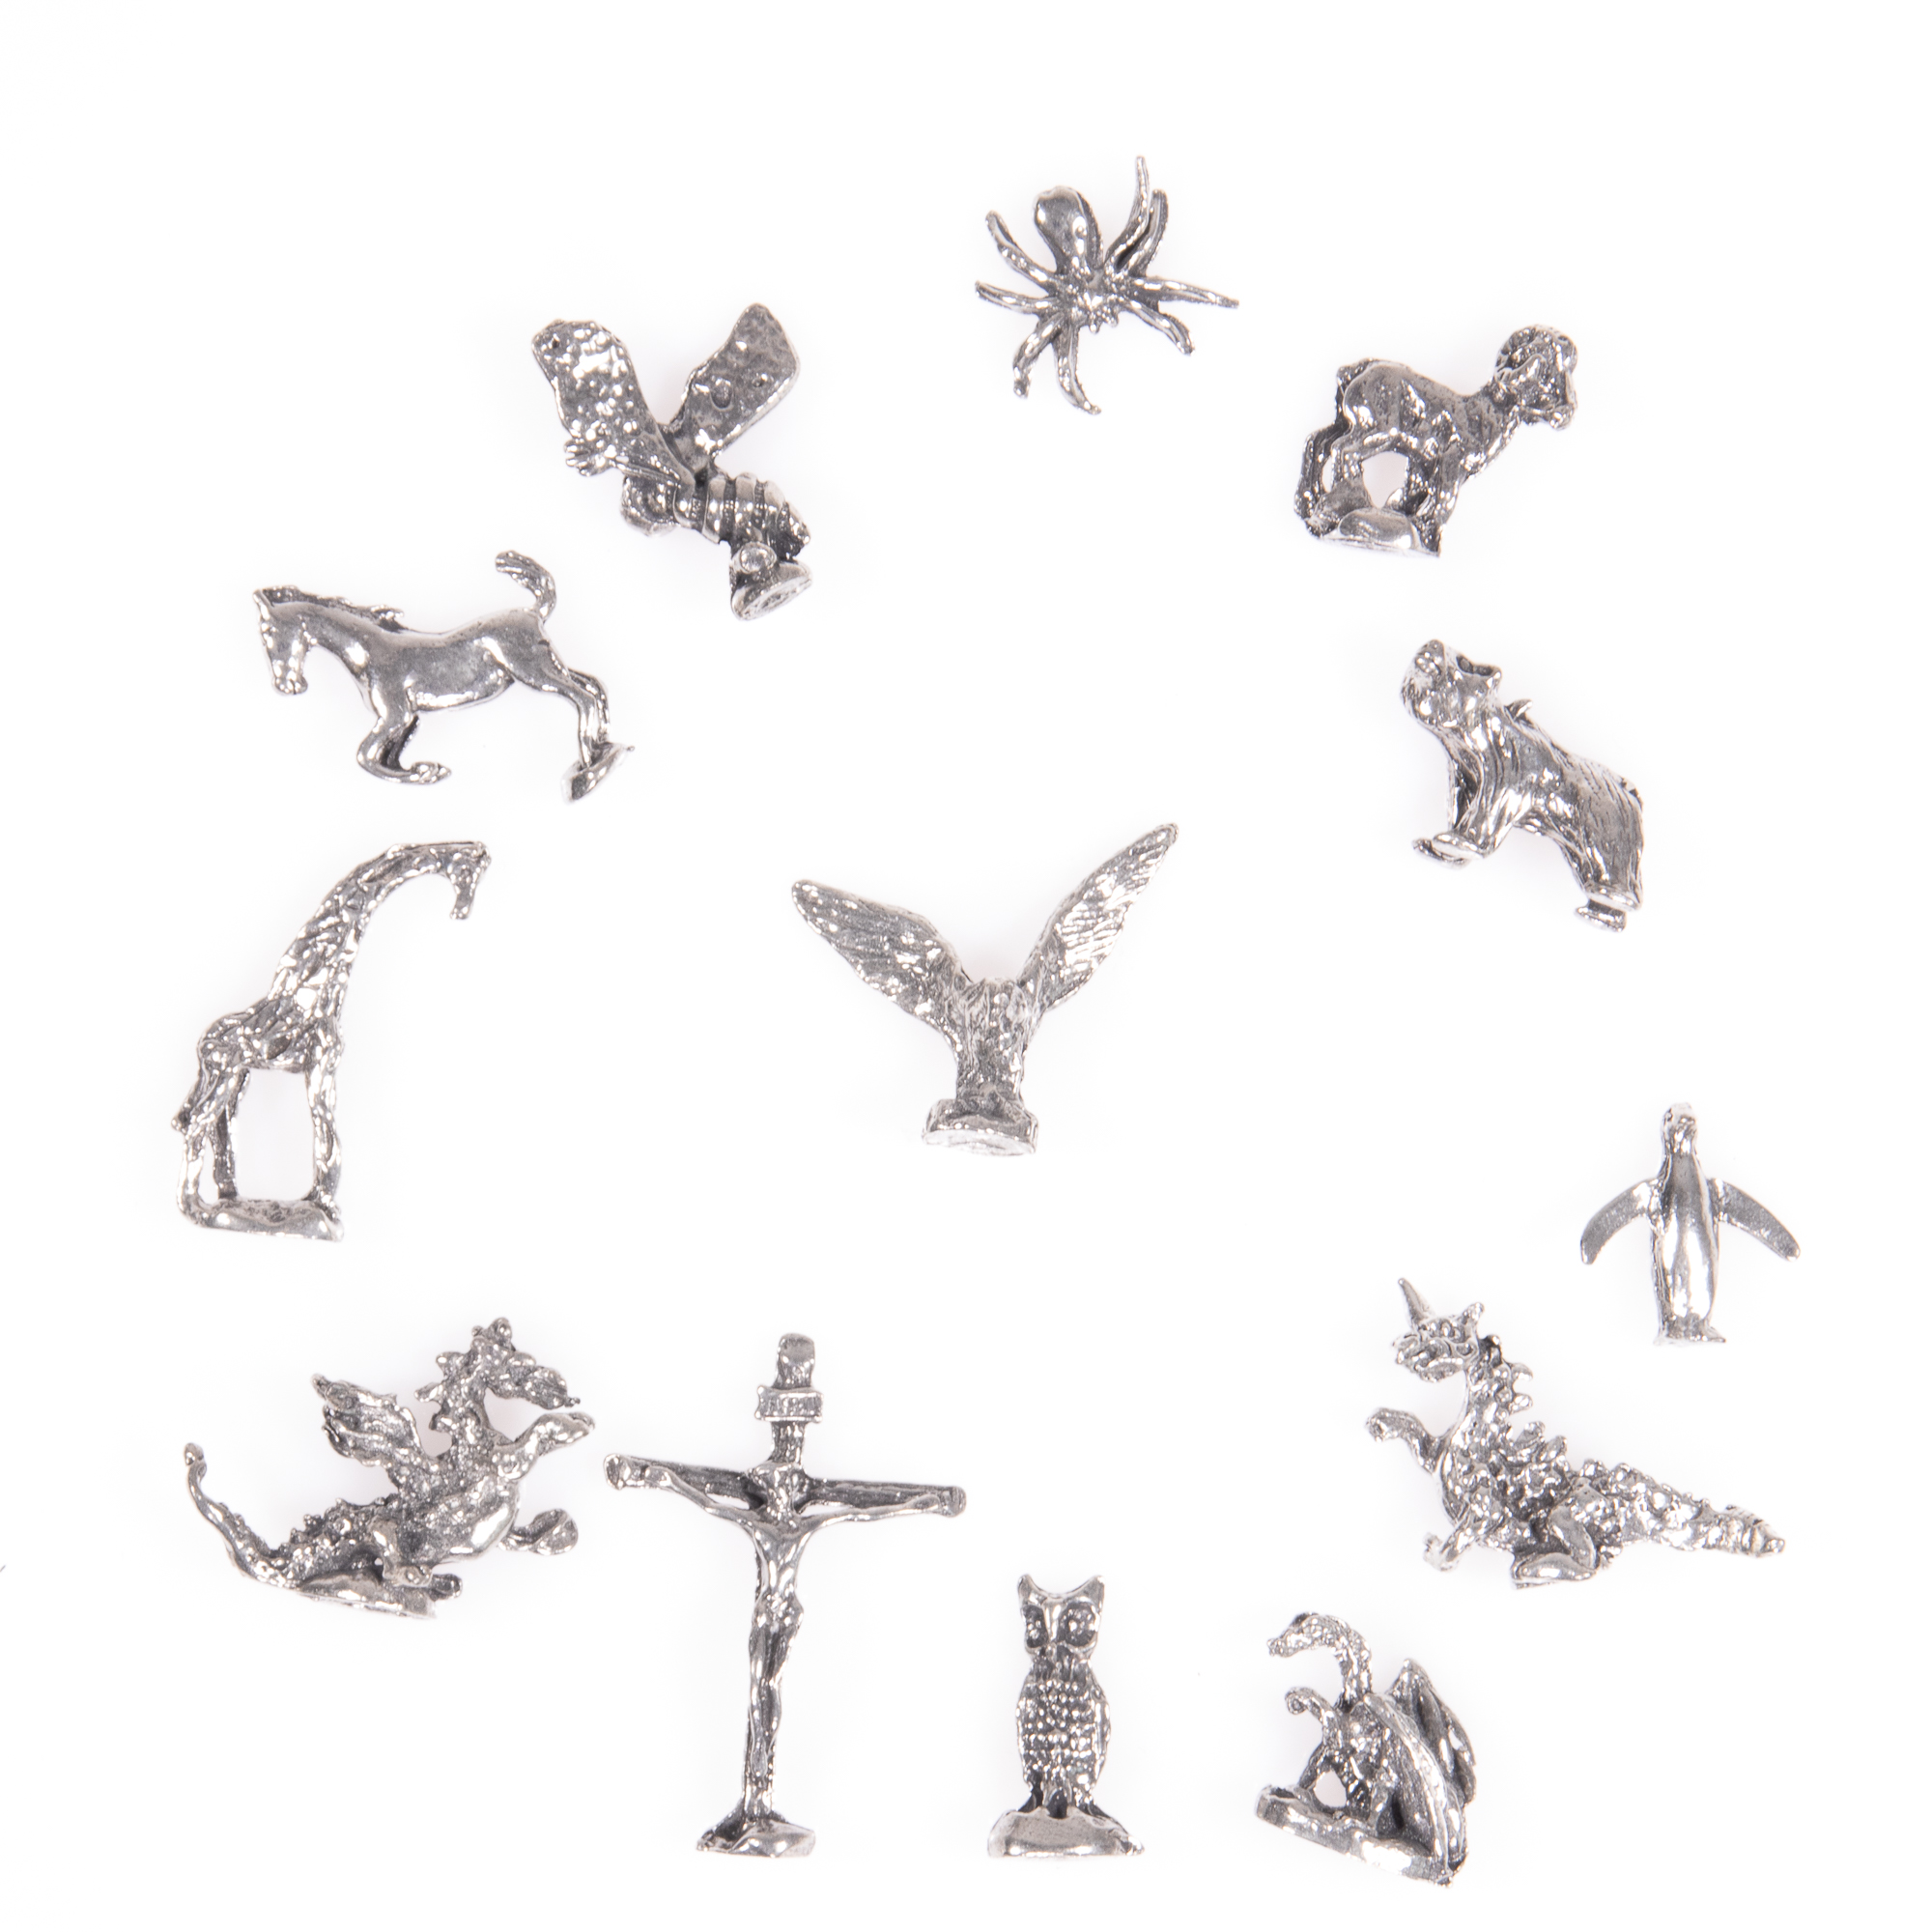 Selection of 13x Silver Novelty Charms - Image 4 of 6